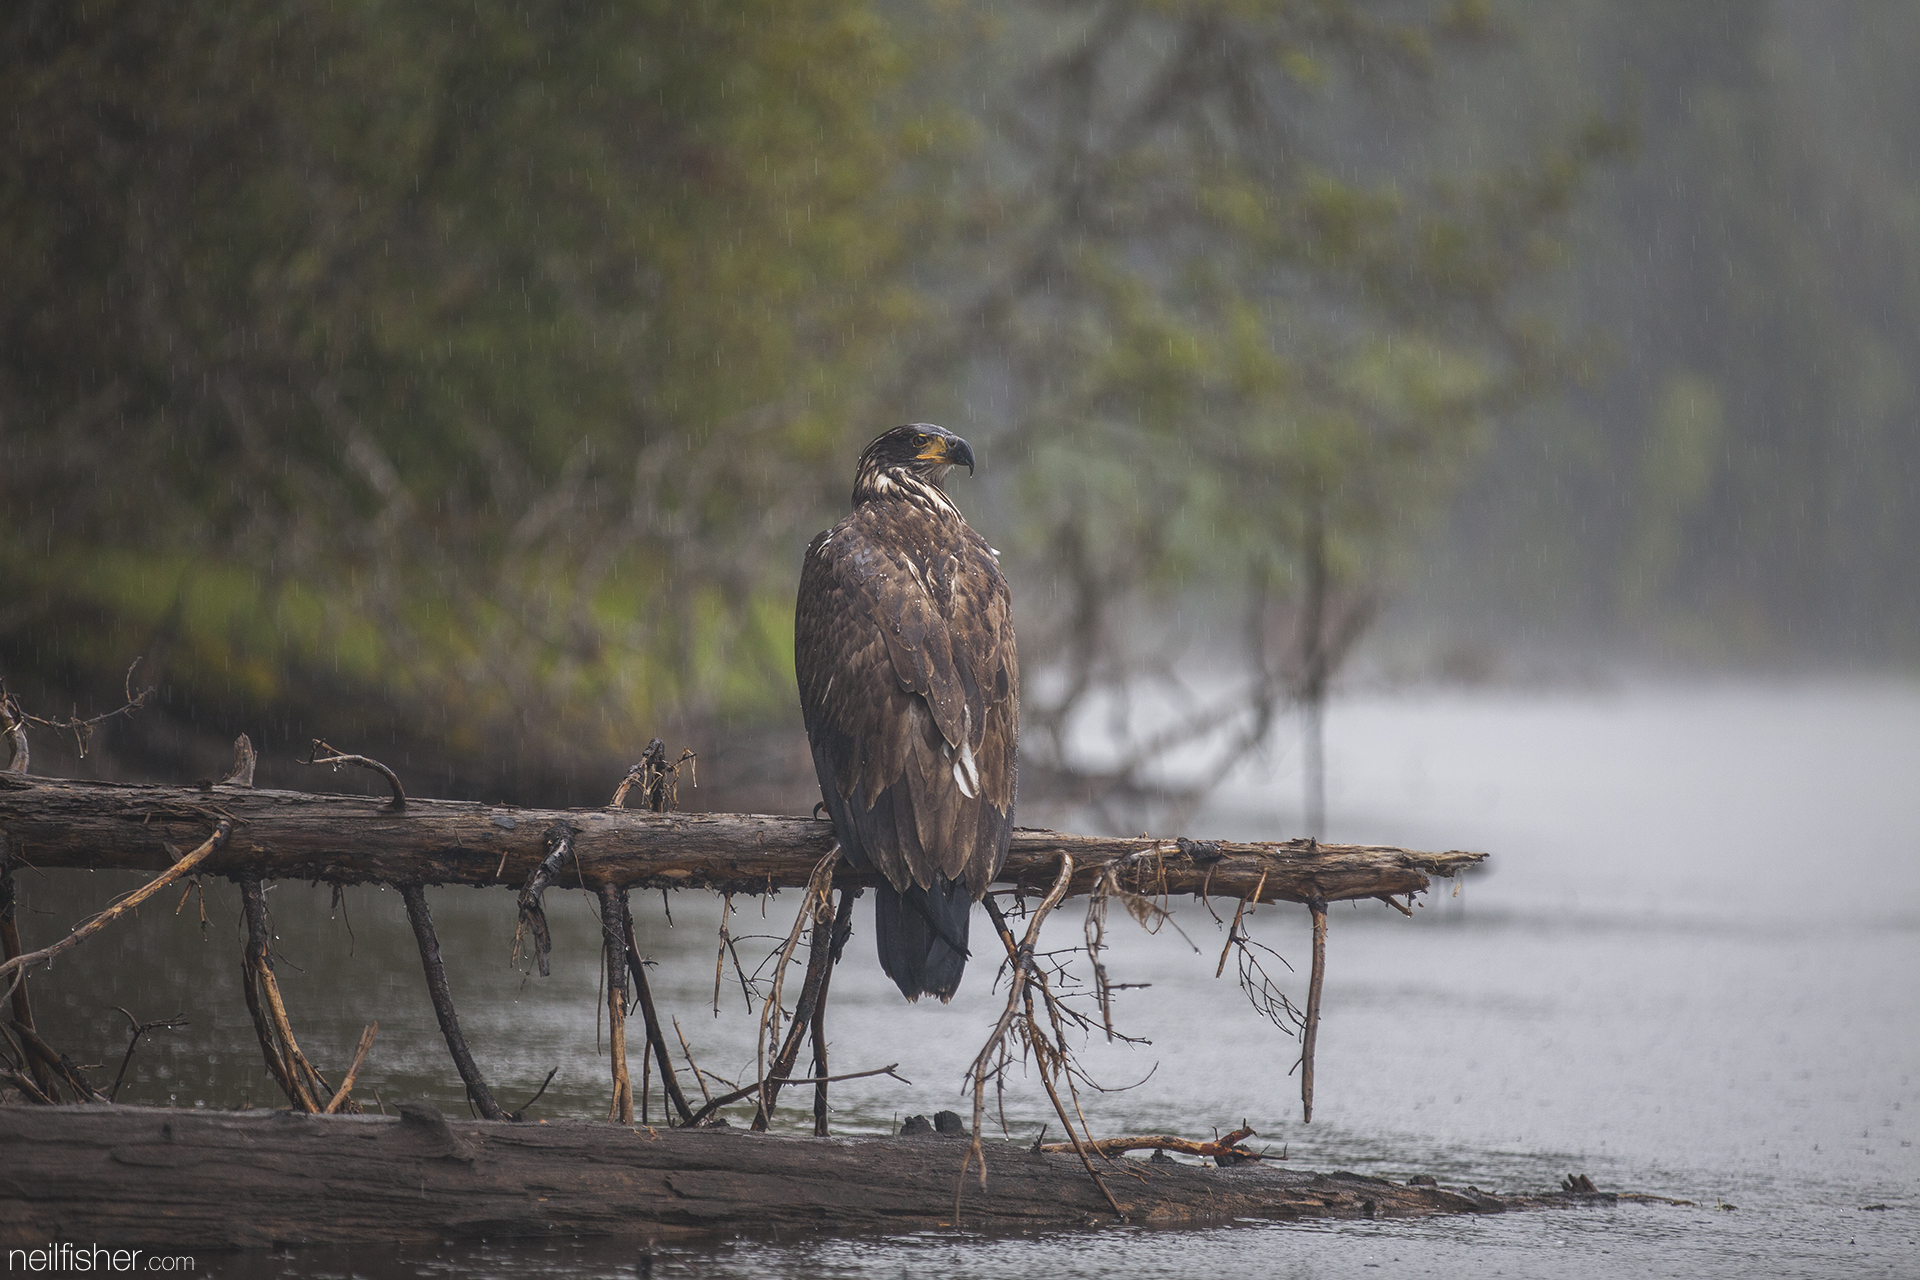 This soaking wet immature bald eagle sat very relaxed on its perch for quite some time. This photo was taken using a focal length of 200mm and isn't cropped, which should give some understanding of how relaxed this bird was. EXIF 1/320 f/2.8 ISO800 200mm